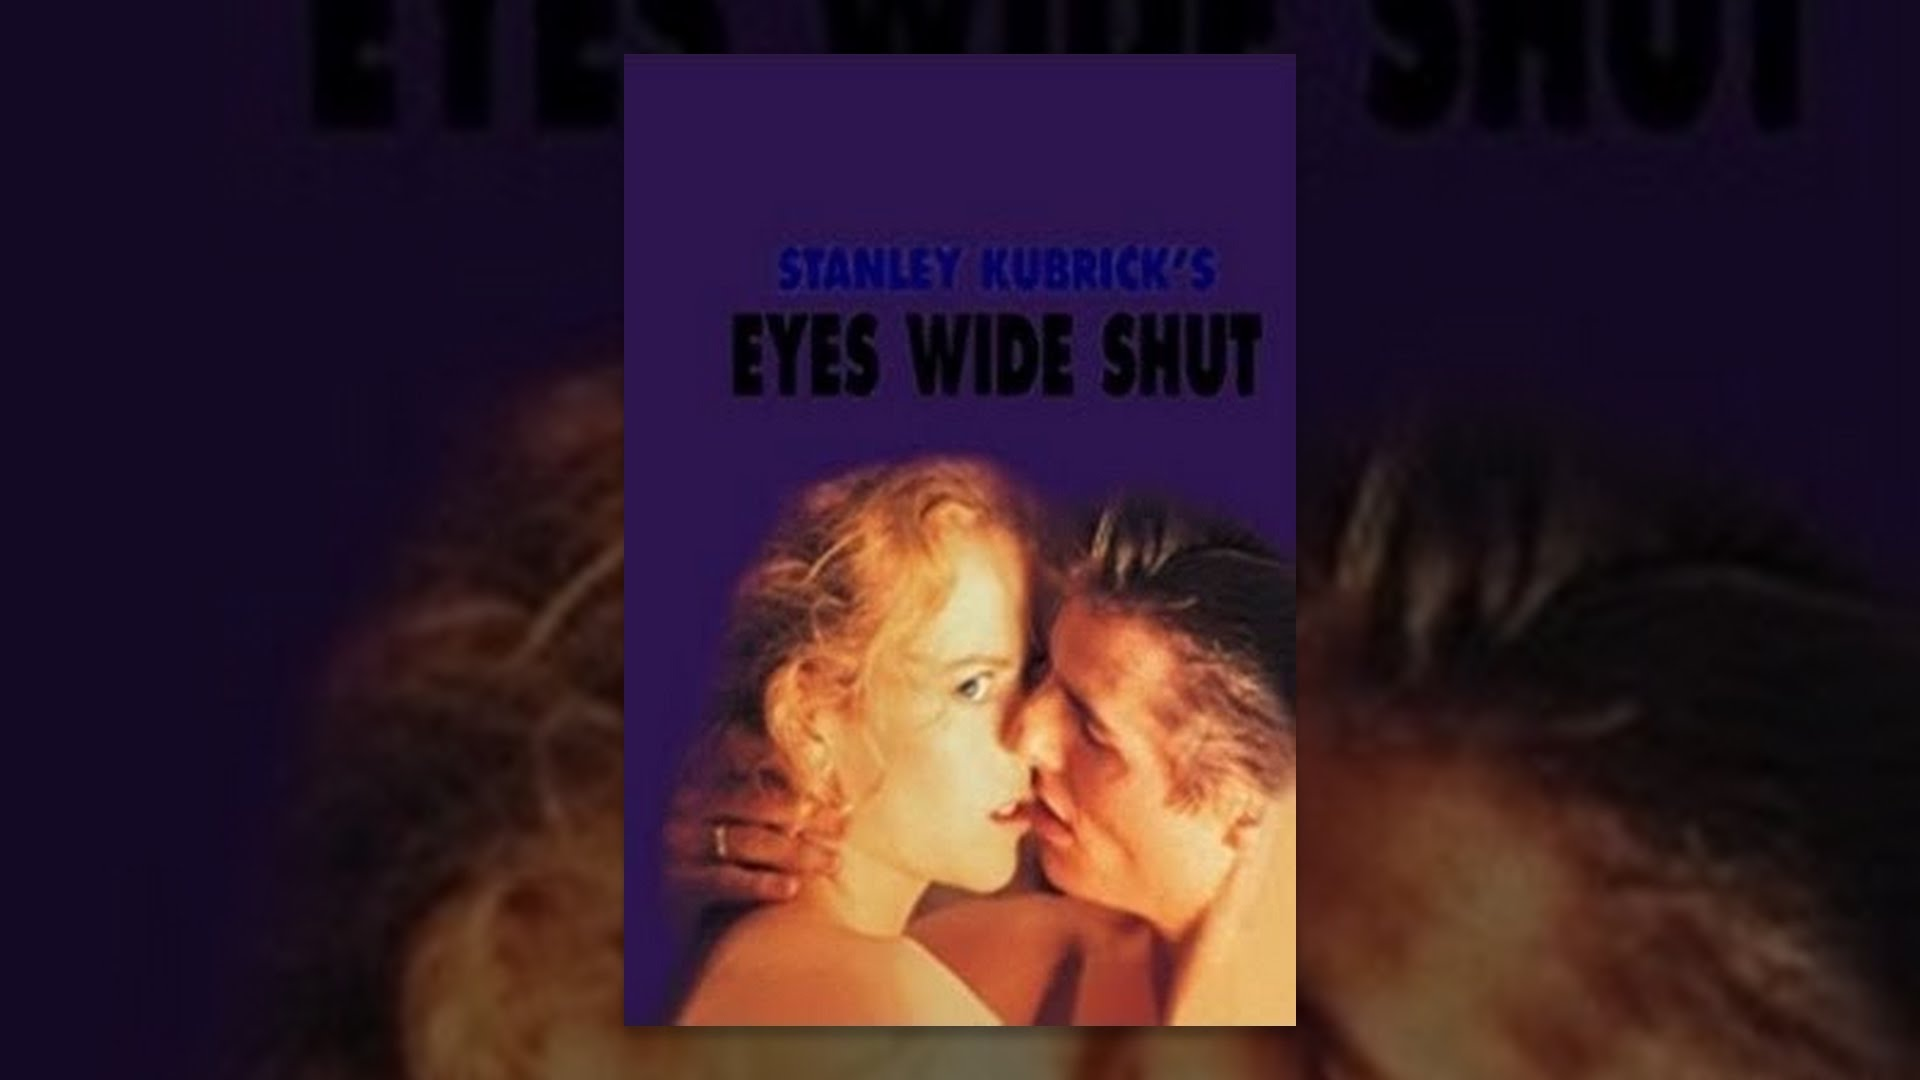 the issue of trust and love in marriages as described in stanley kubricks eyes wide shut Stanley kubrick's eyes wide shut to make love eyes wide shut defines its eyes wide shut firsthand on march 7th, 1999, stanley kubrick died of a.